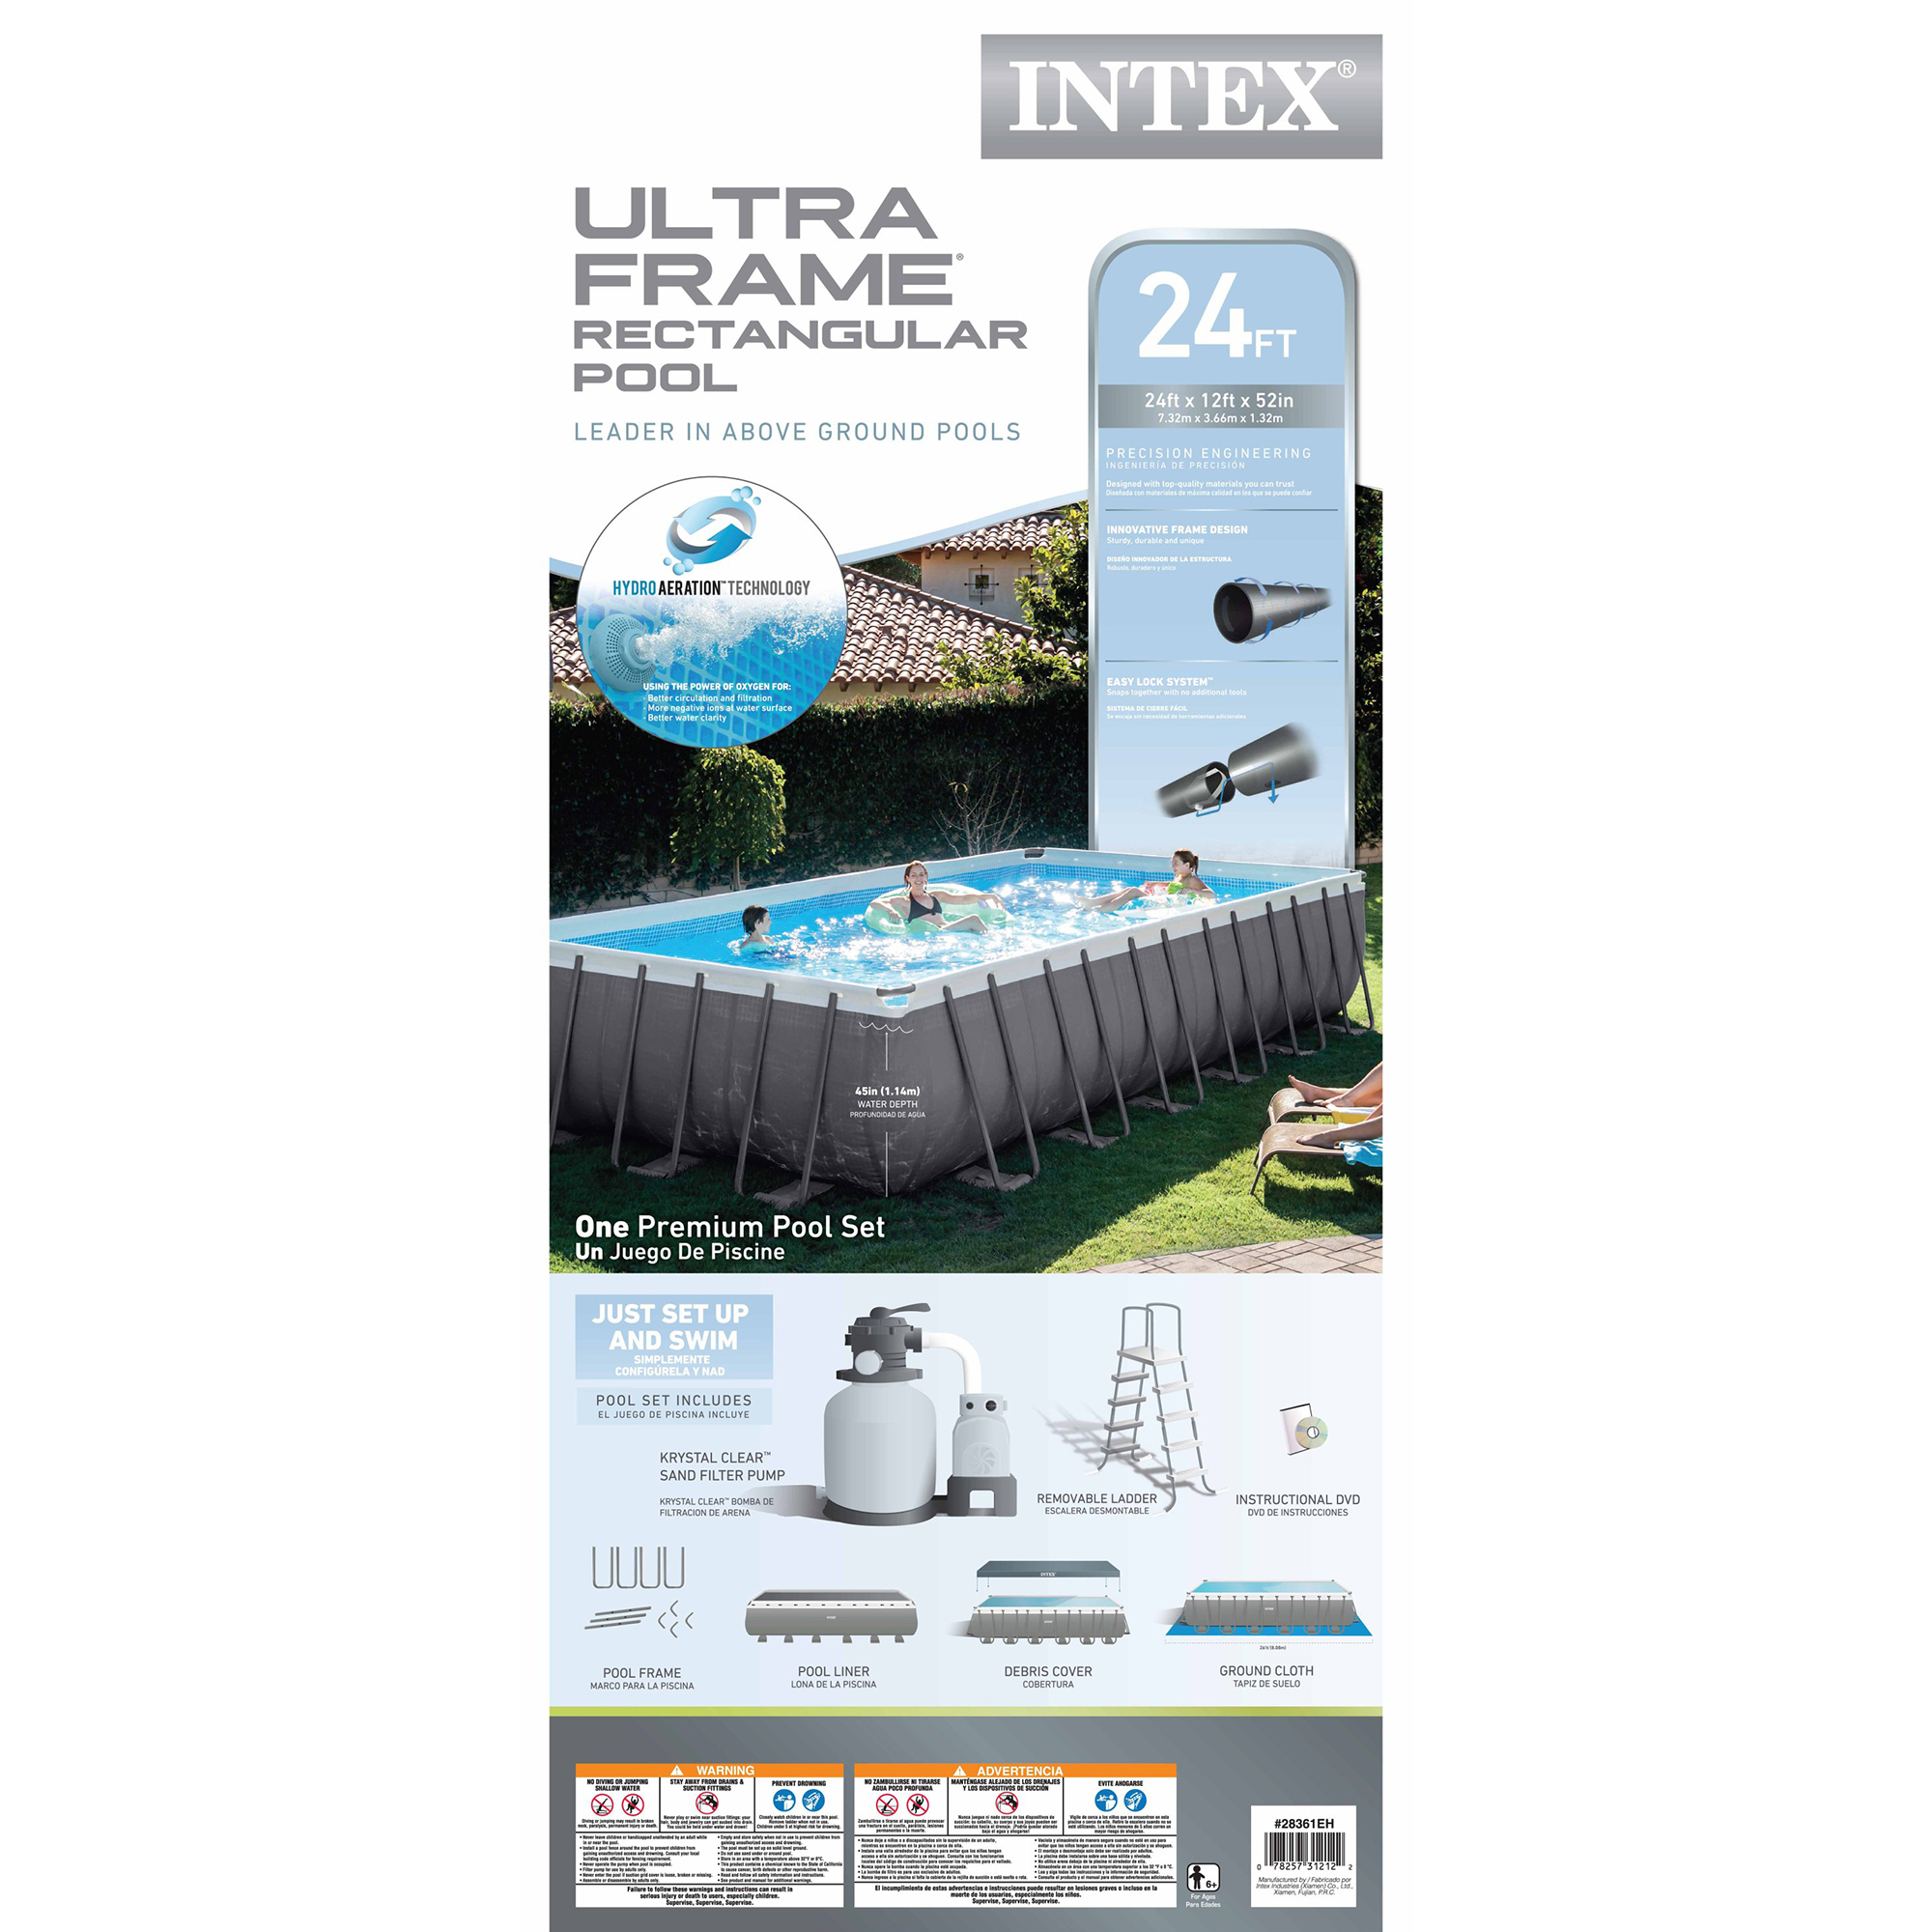 Intex ultra frame rectangular swimming pool set with sand filter pump ladder 78257312122 ebay - Intex pool set aldi ...